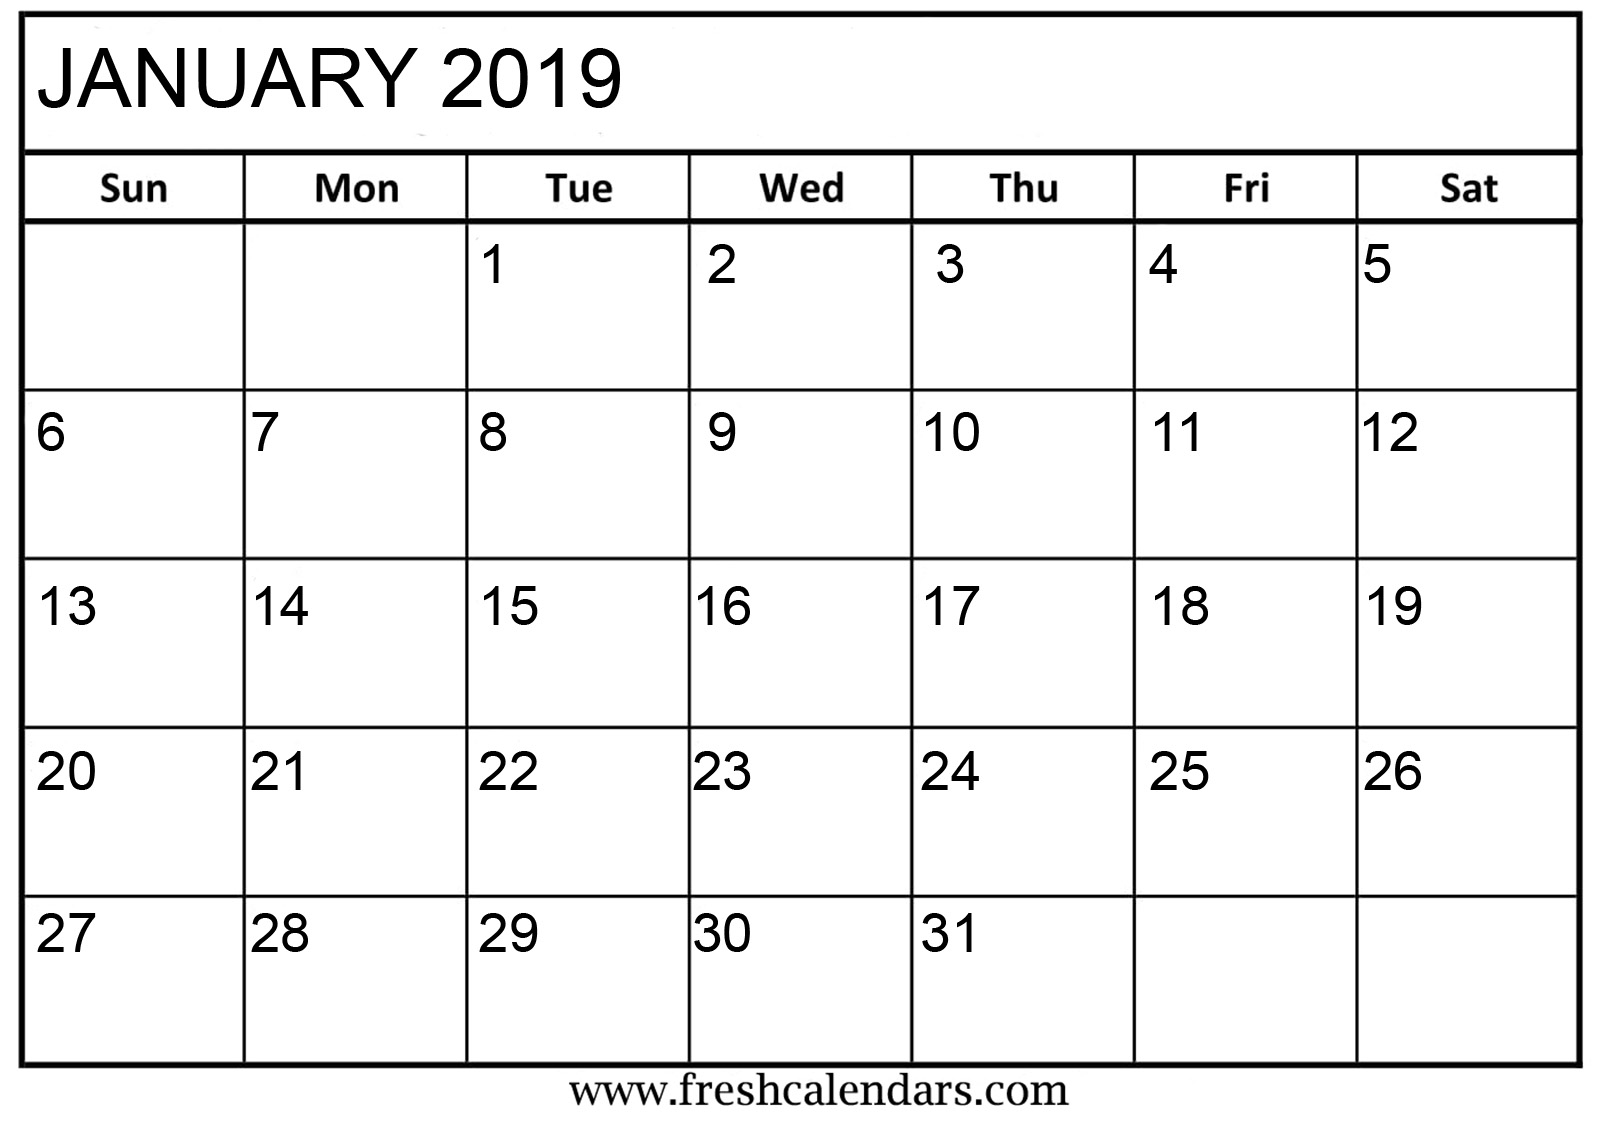 January 2019 Basic Printable Calendar